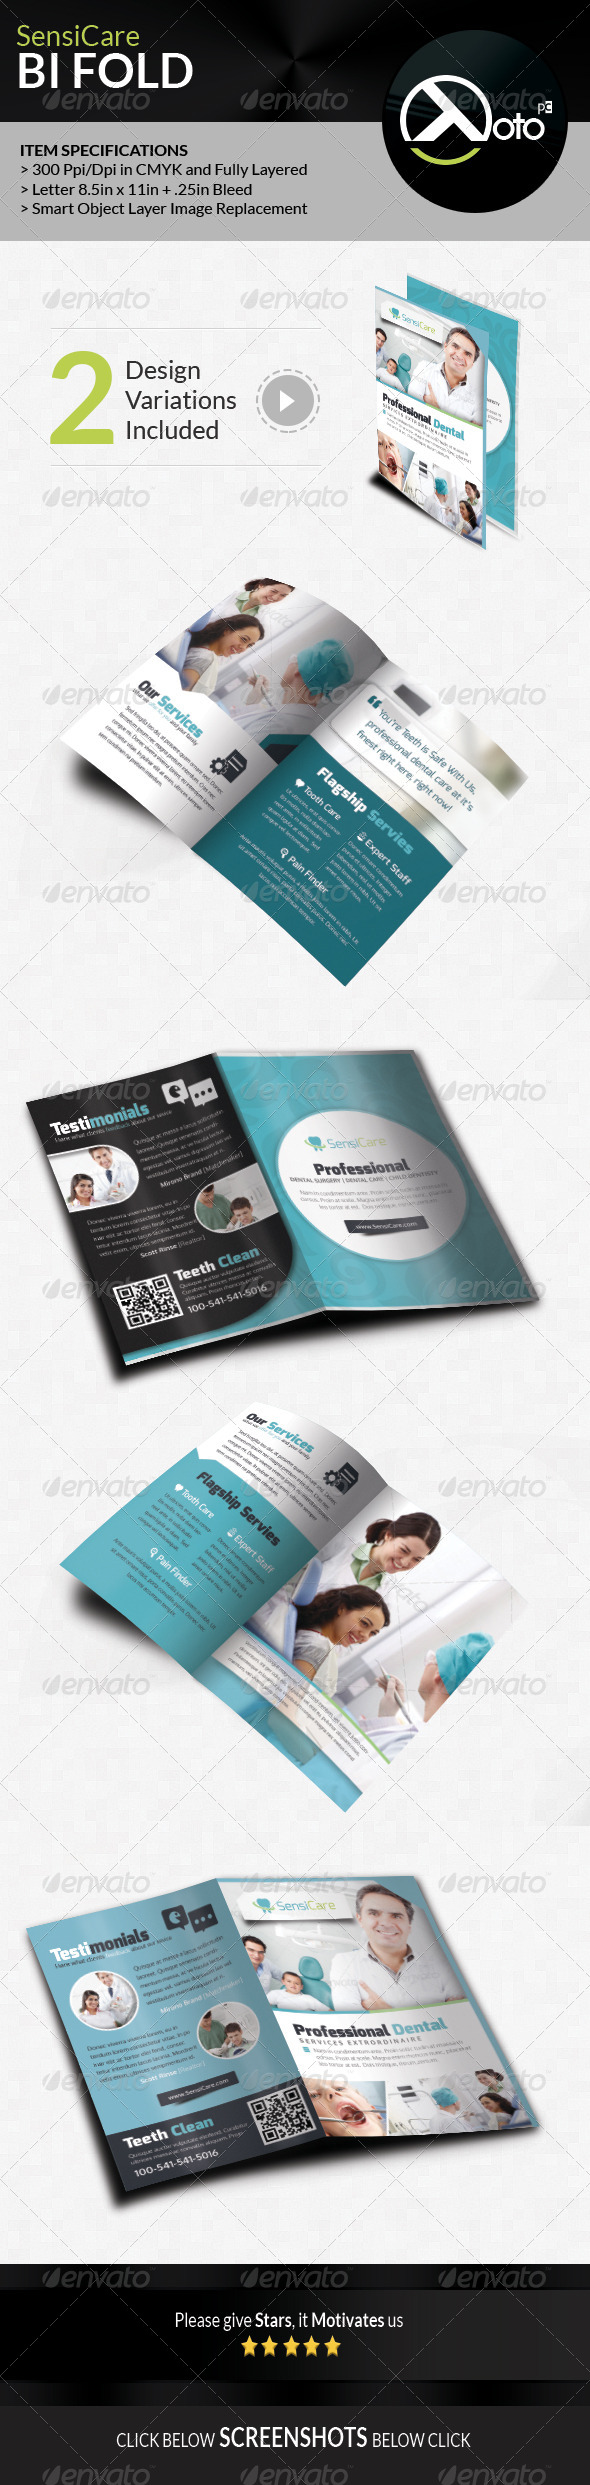 GraphicRiver SensiCare Medical Dental Health Bifold 7908774